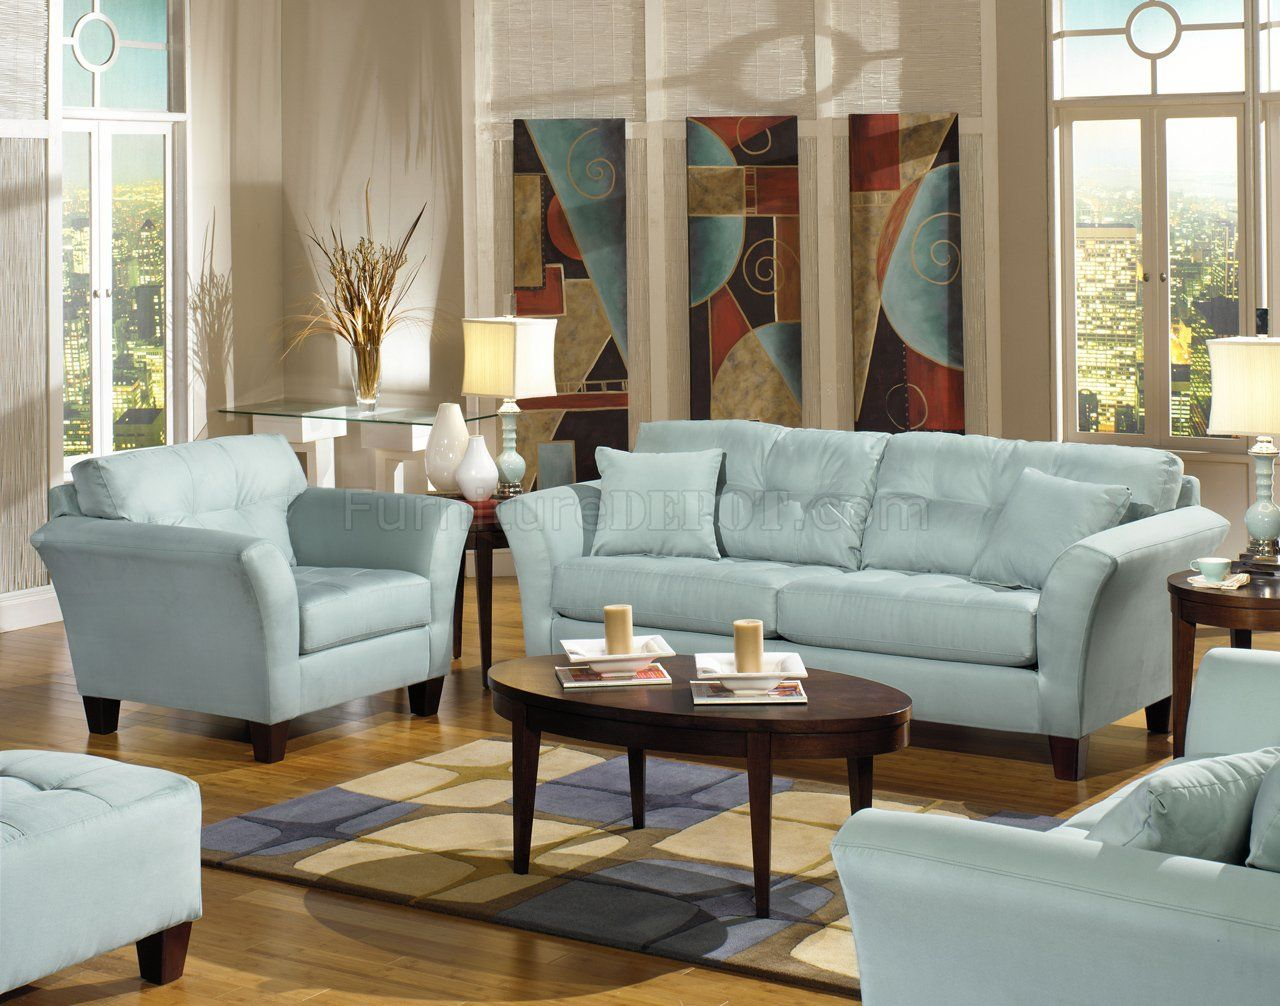 Terrific Light Blue Leather Sofa Set For Elegant Living Room Interior Inzonedesignstudio Interior Chair Design Inzonedesignstudiocom